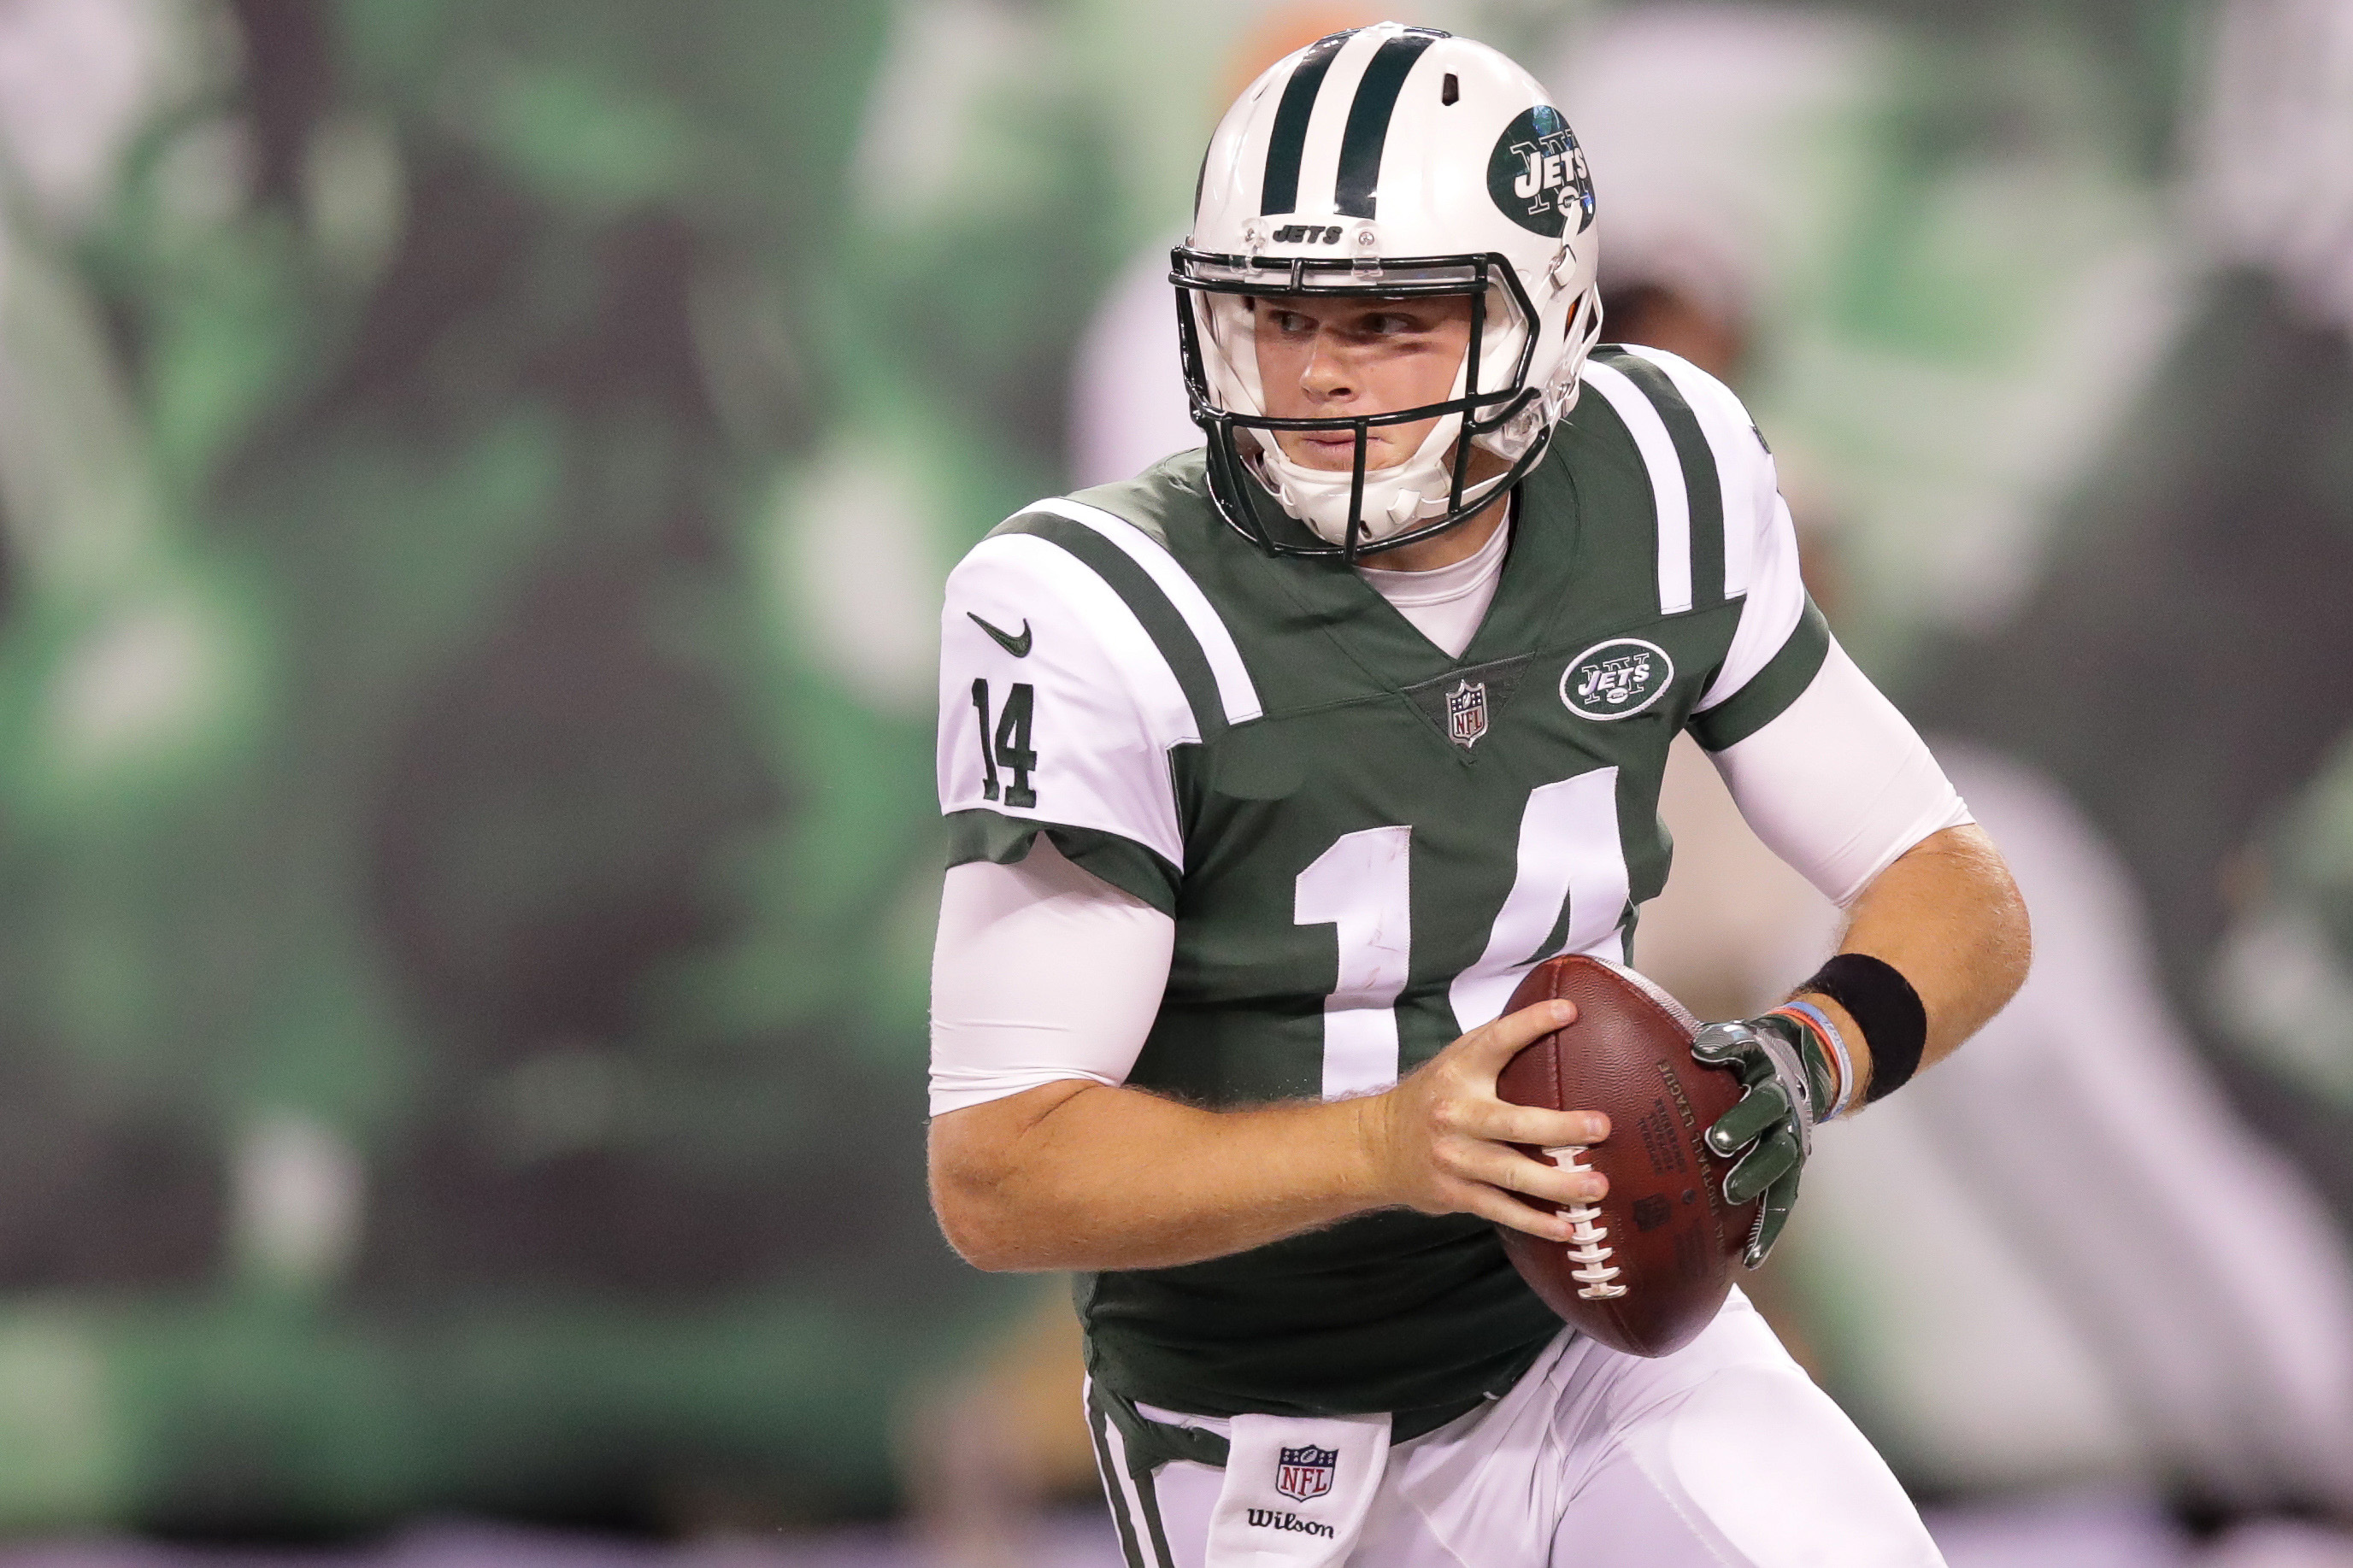 Aug 10, 2018; East Rutherford, NJ, USA; New York Jets quarterback Sam Darnold (14) rolls out during the second half against the Atlanta Falcons at MetLife Stadium. Mandatory Credit: Vincent Carchietta-USA TODAY Sports